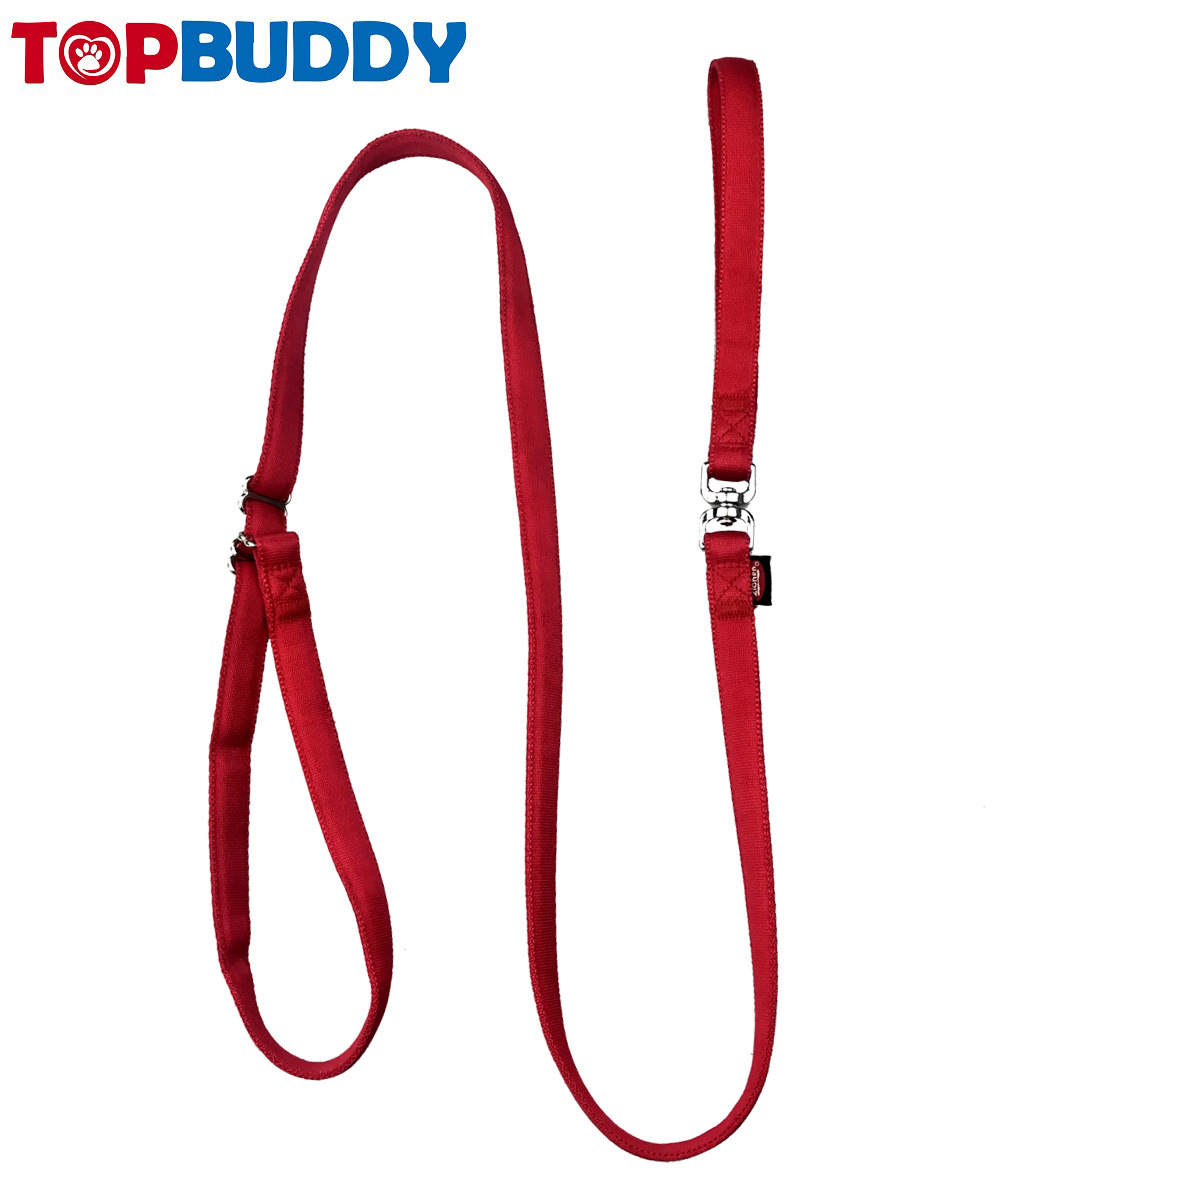 Pet Nylon Thick Hand Holding Rope Pet High Quality Nylon P Pendant Hand Holding Rope Proof Punch Dog Hand Holding Rope